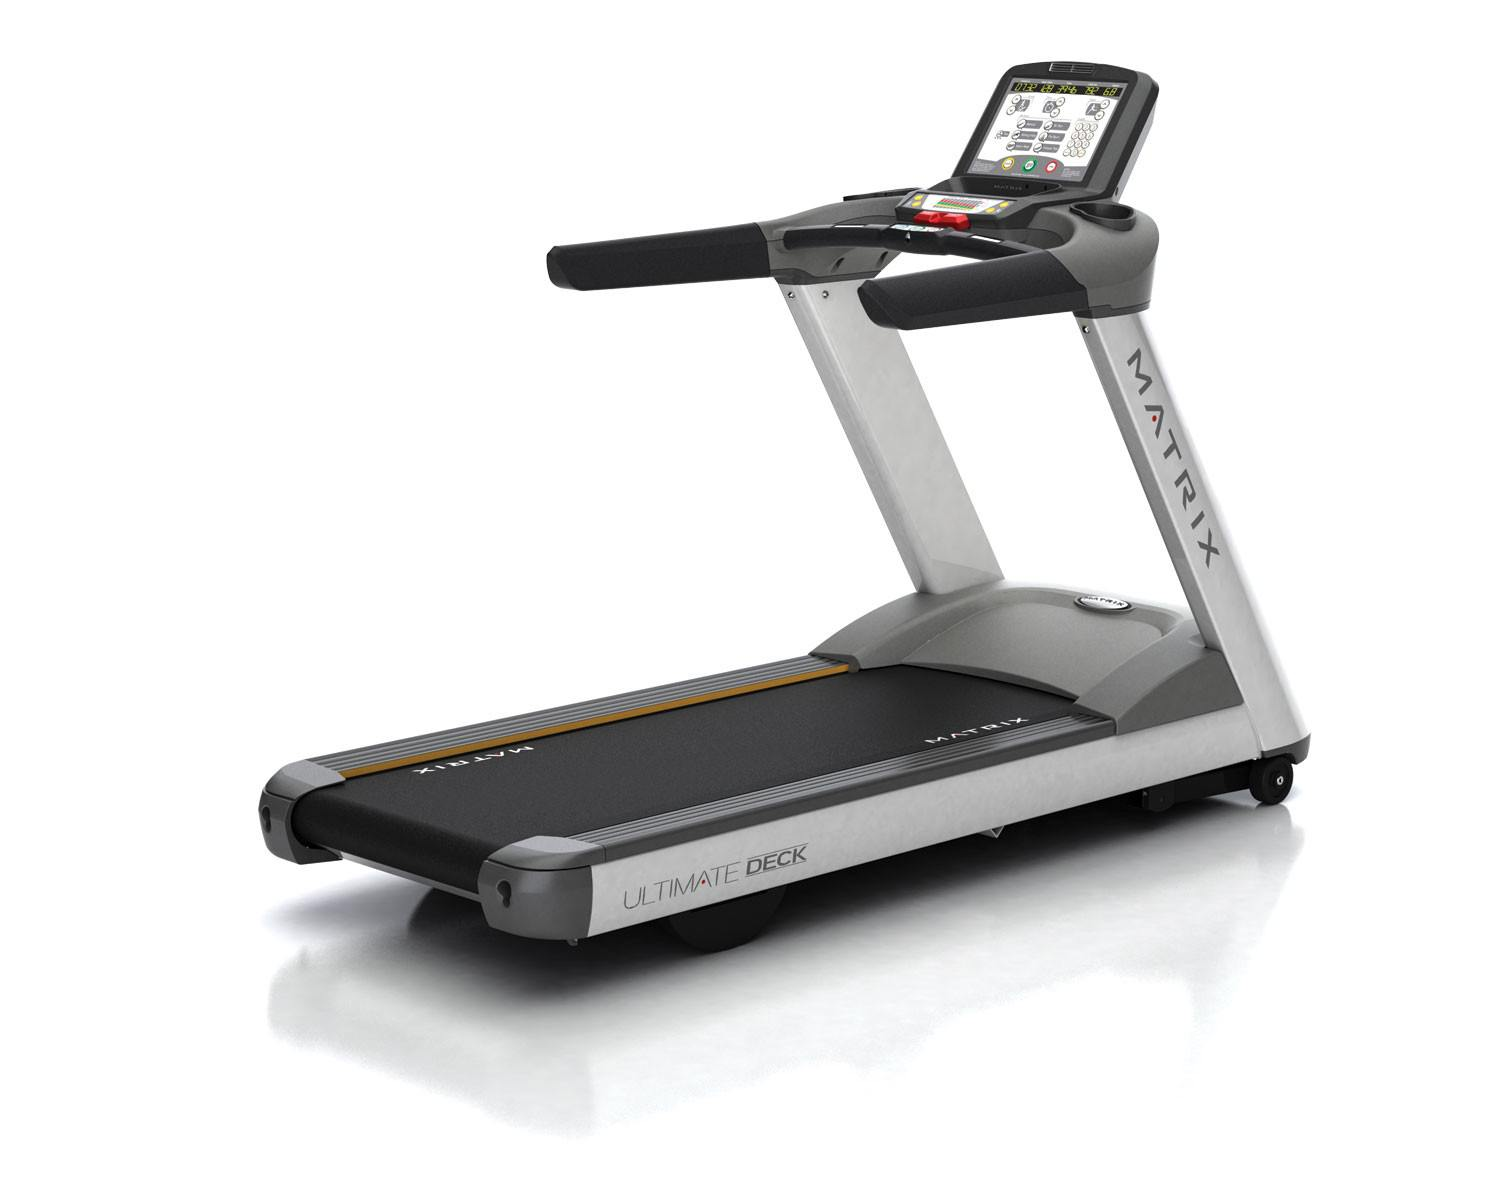 Matrix TX5 Treadmill - Fitness Equipment Broker | Voted America's #1 Trusted Source